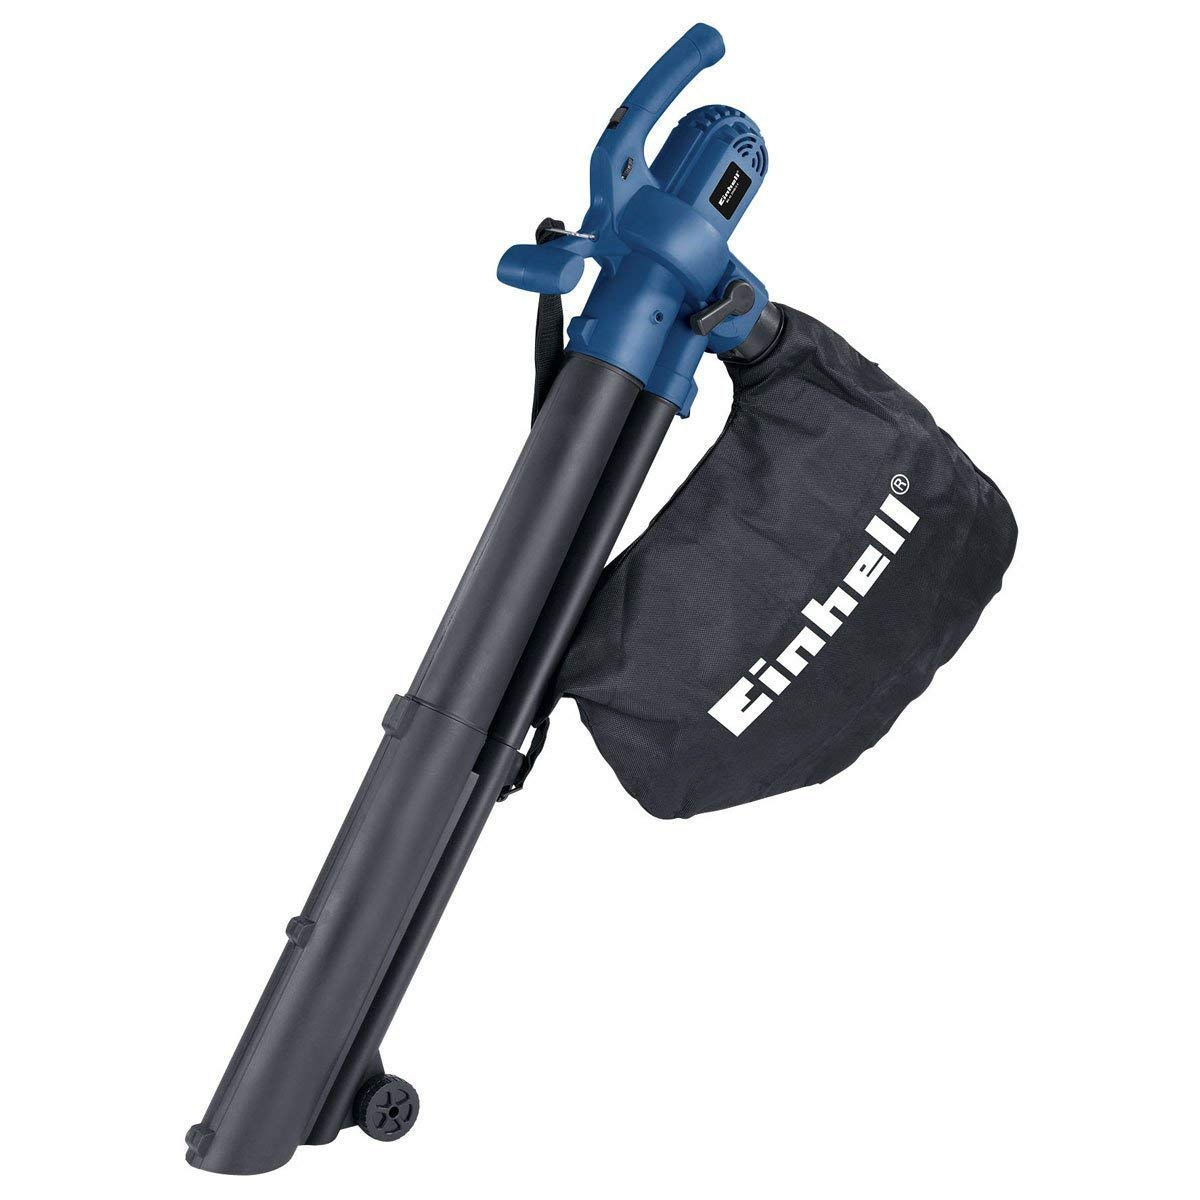 Einhell BG-EL 2500/2 E 2500 W Electric Leaf Blower with 3 Functions and Variable Speed Control - Red 3433260